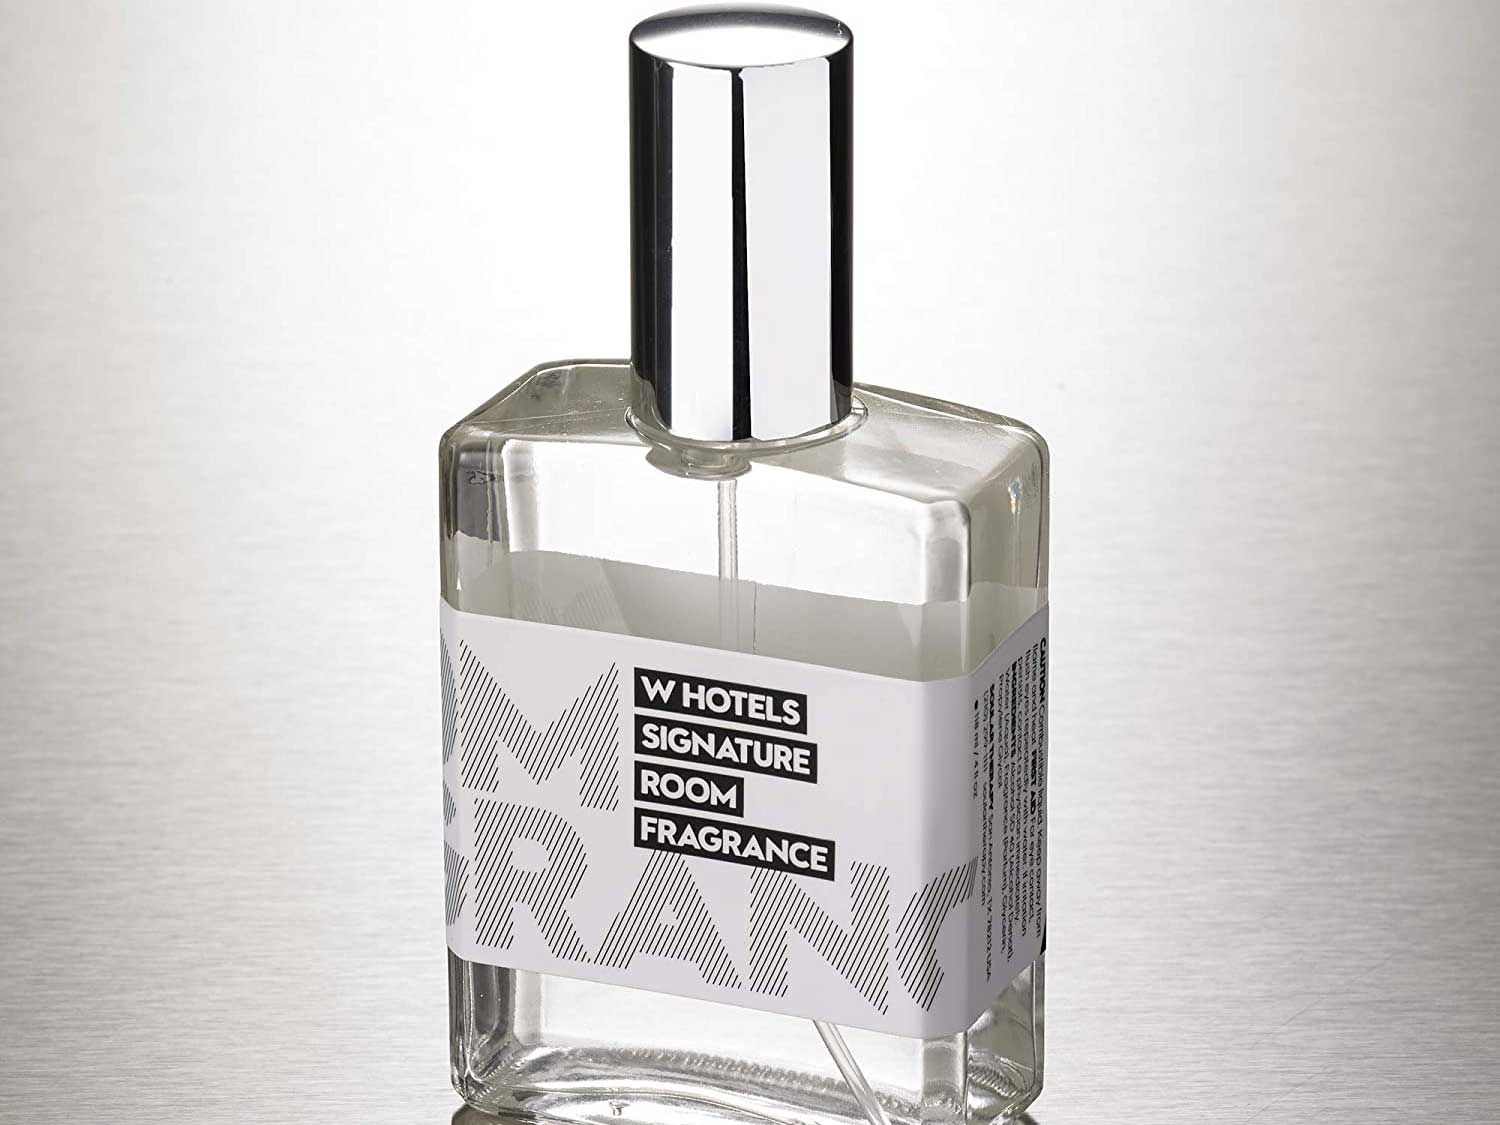 W Hotels Room Spray - Home Fragrance Spray with Signature W Scent - 4 oz.